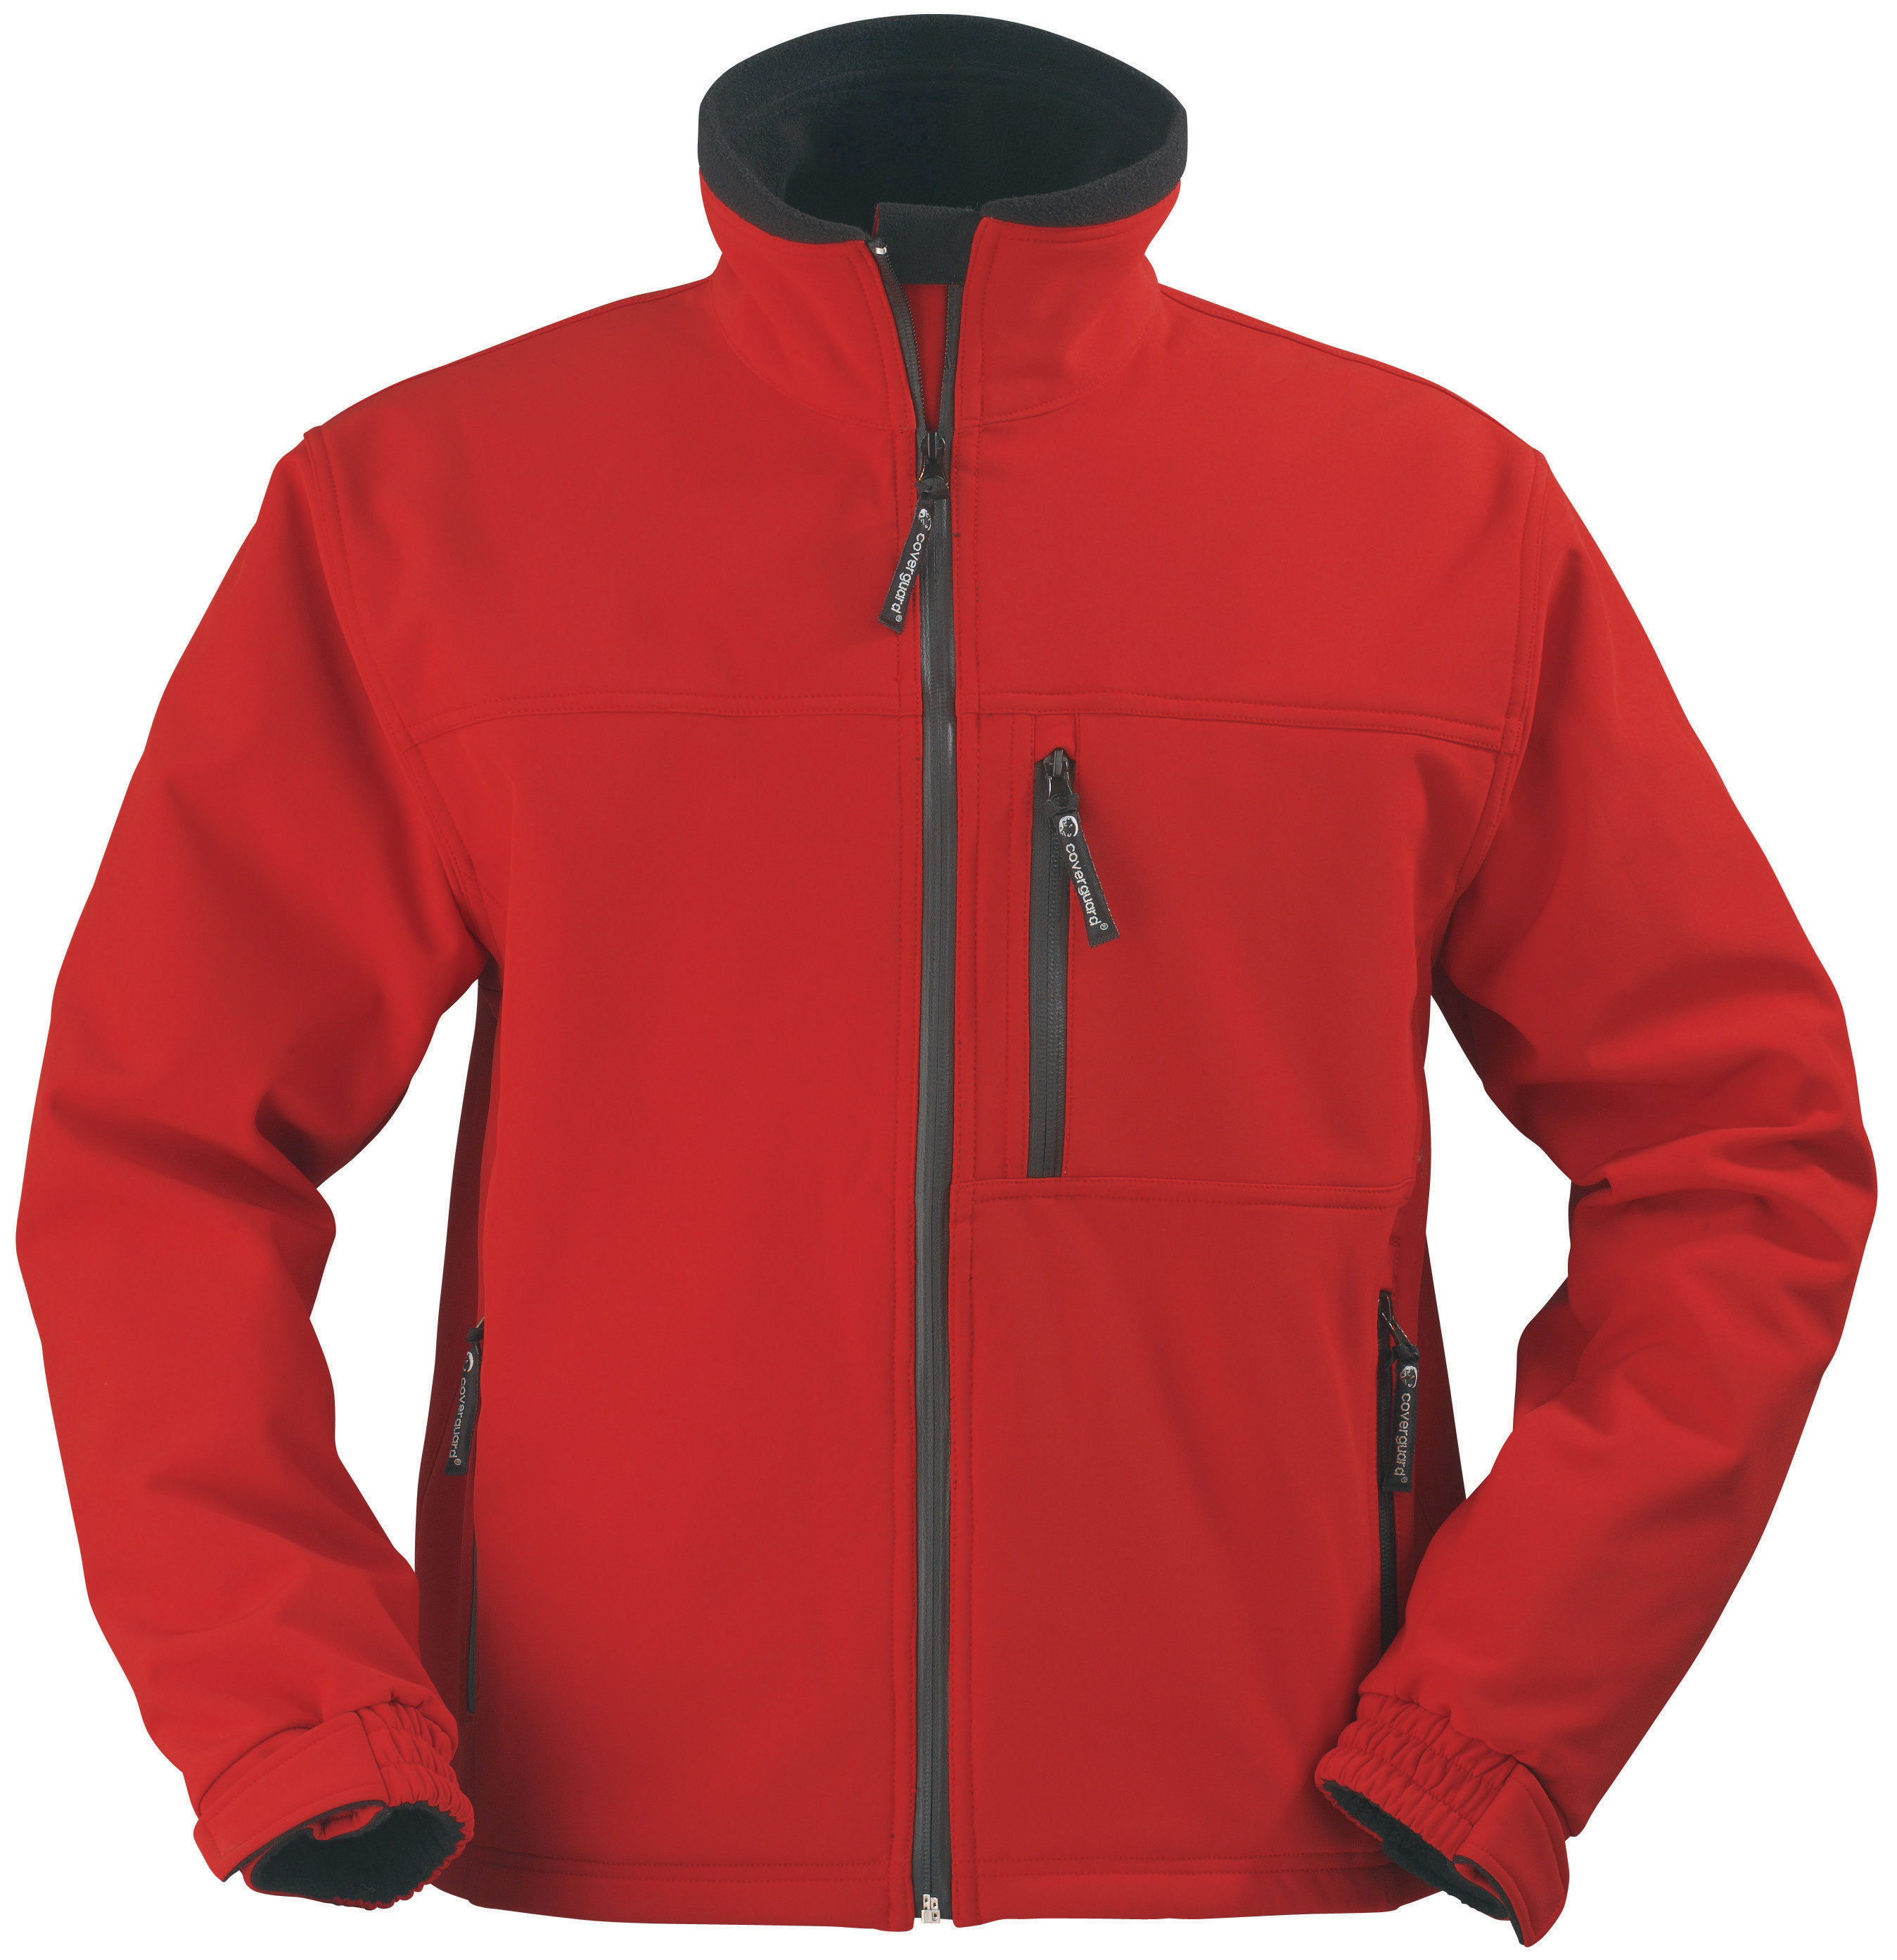 red jacket jewish personals Schindler's list is a 1993 american historical period drama film directed and co-produced hope or the red blood of the jewish people being sacrificed in the.